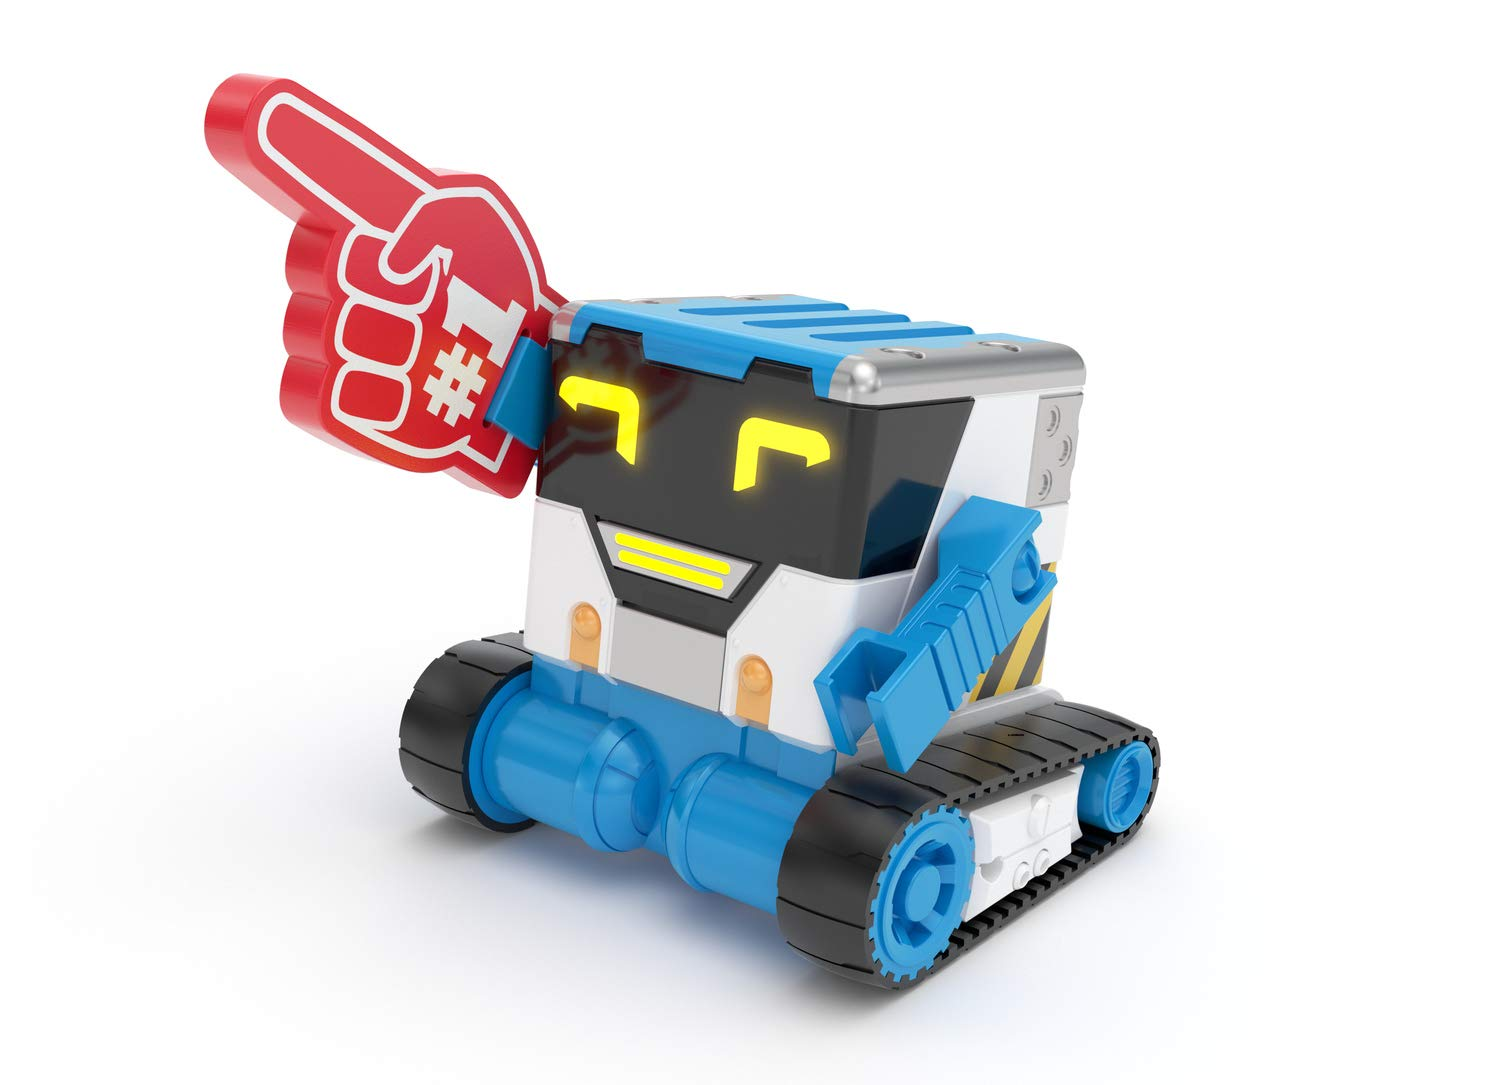 The MiBro is an interactive robot toy.